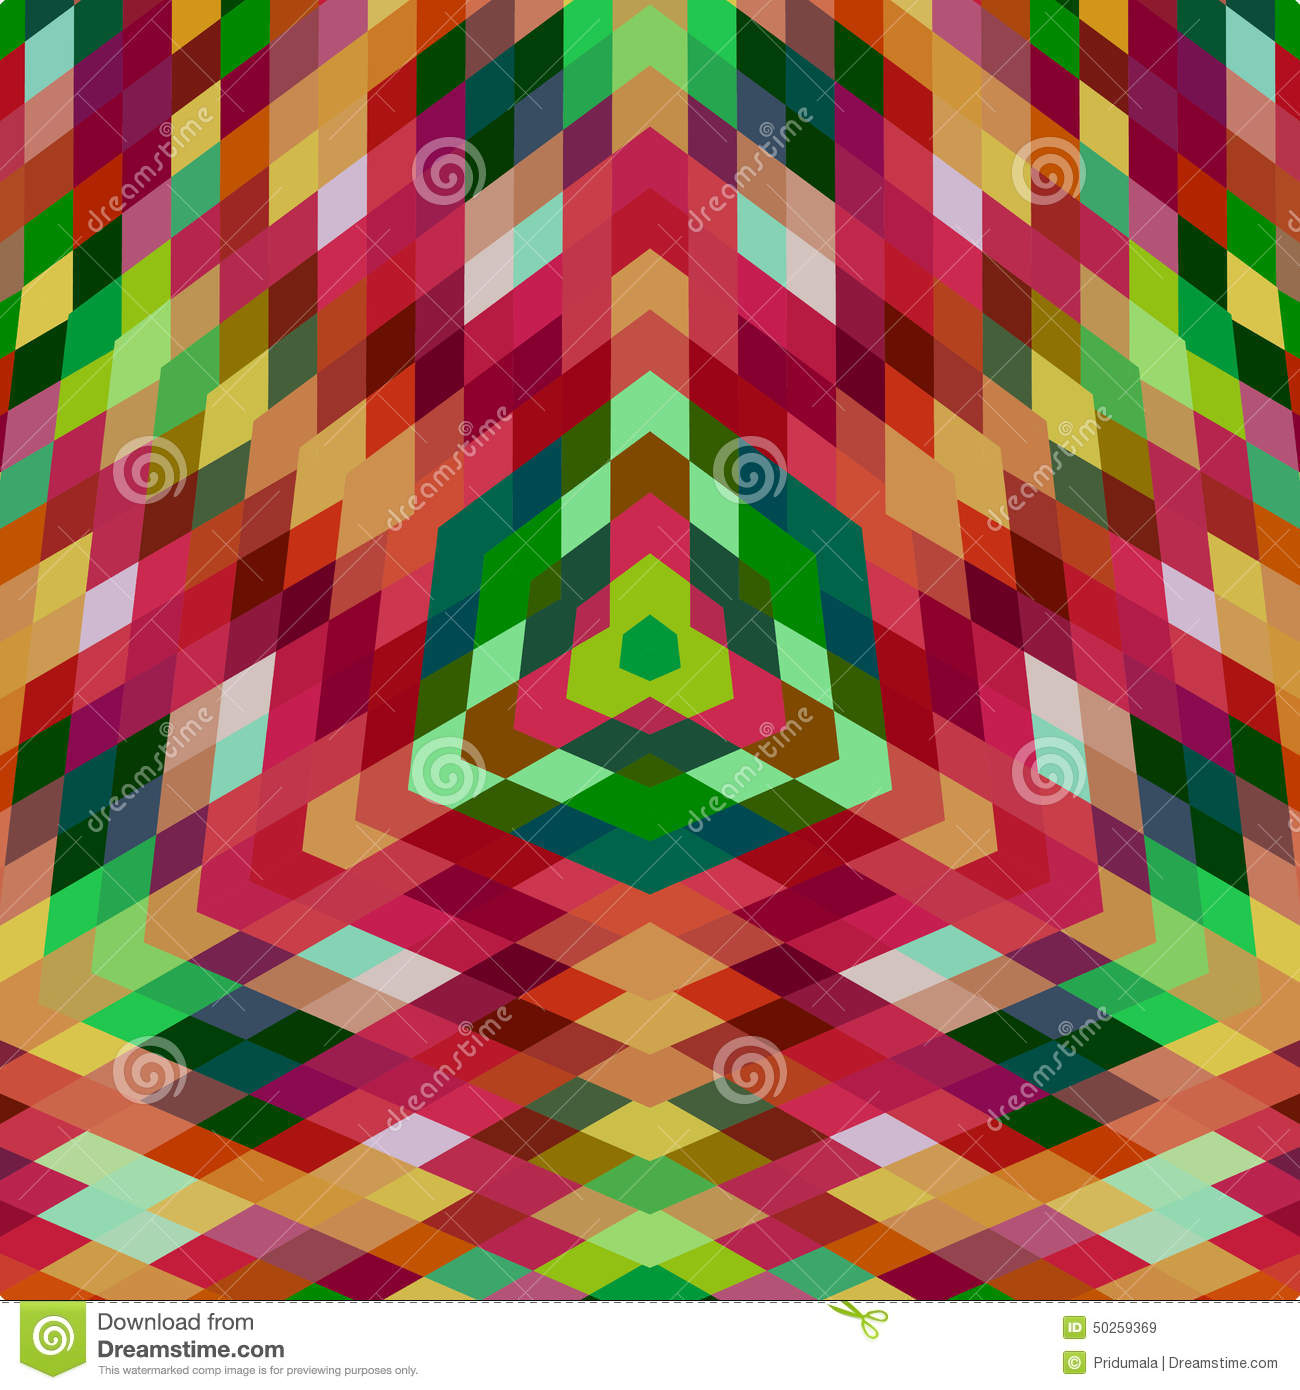 Abstract retro geometric background with place for your text colorful - Retro Vector Backdrop Of Geometric Shapes Colorful Mosaic